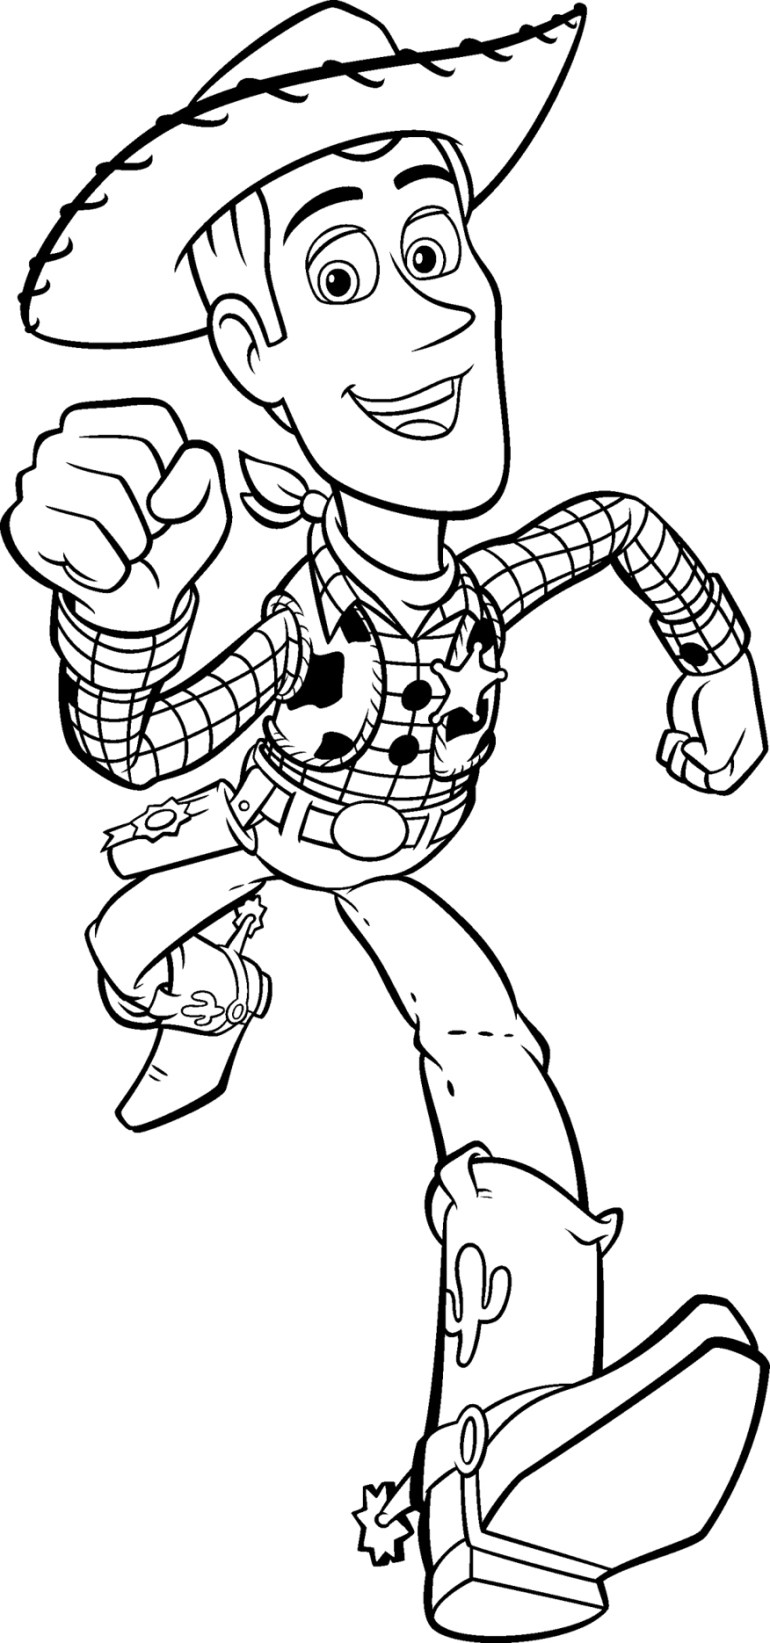 Free Printable Toy Story Coloring Pages For Kids | free printable online coloring pages disney characters